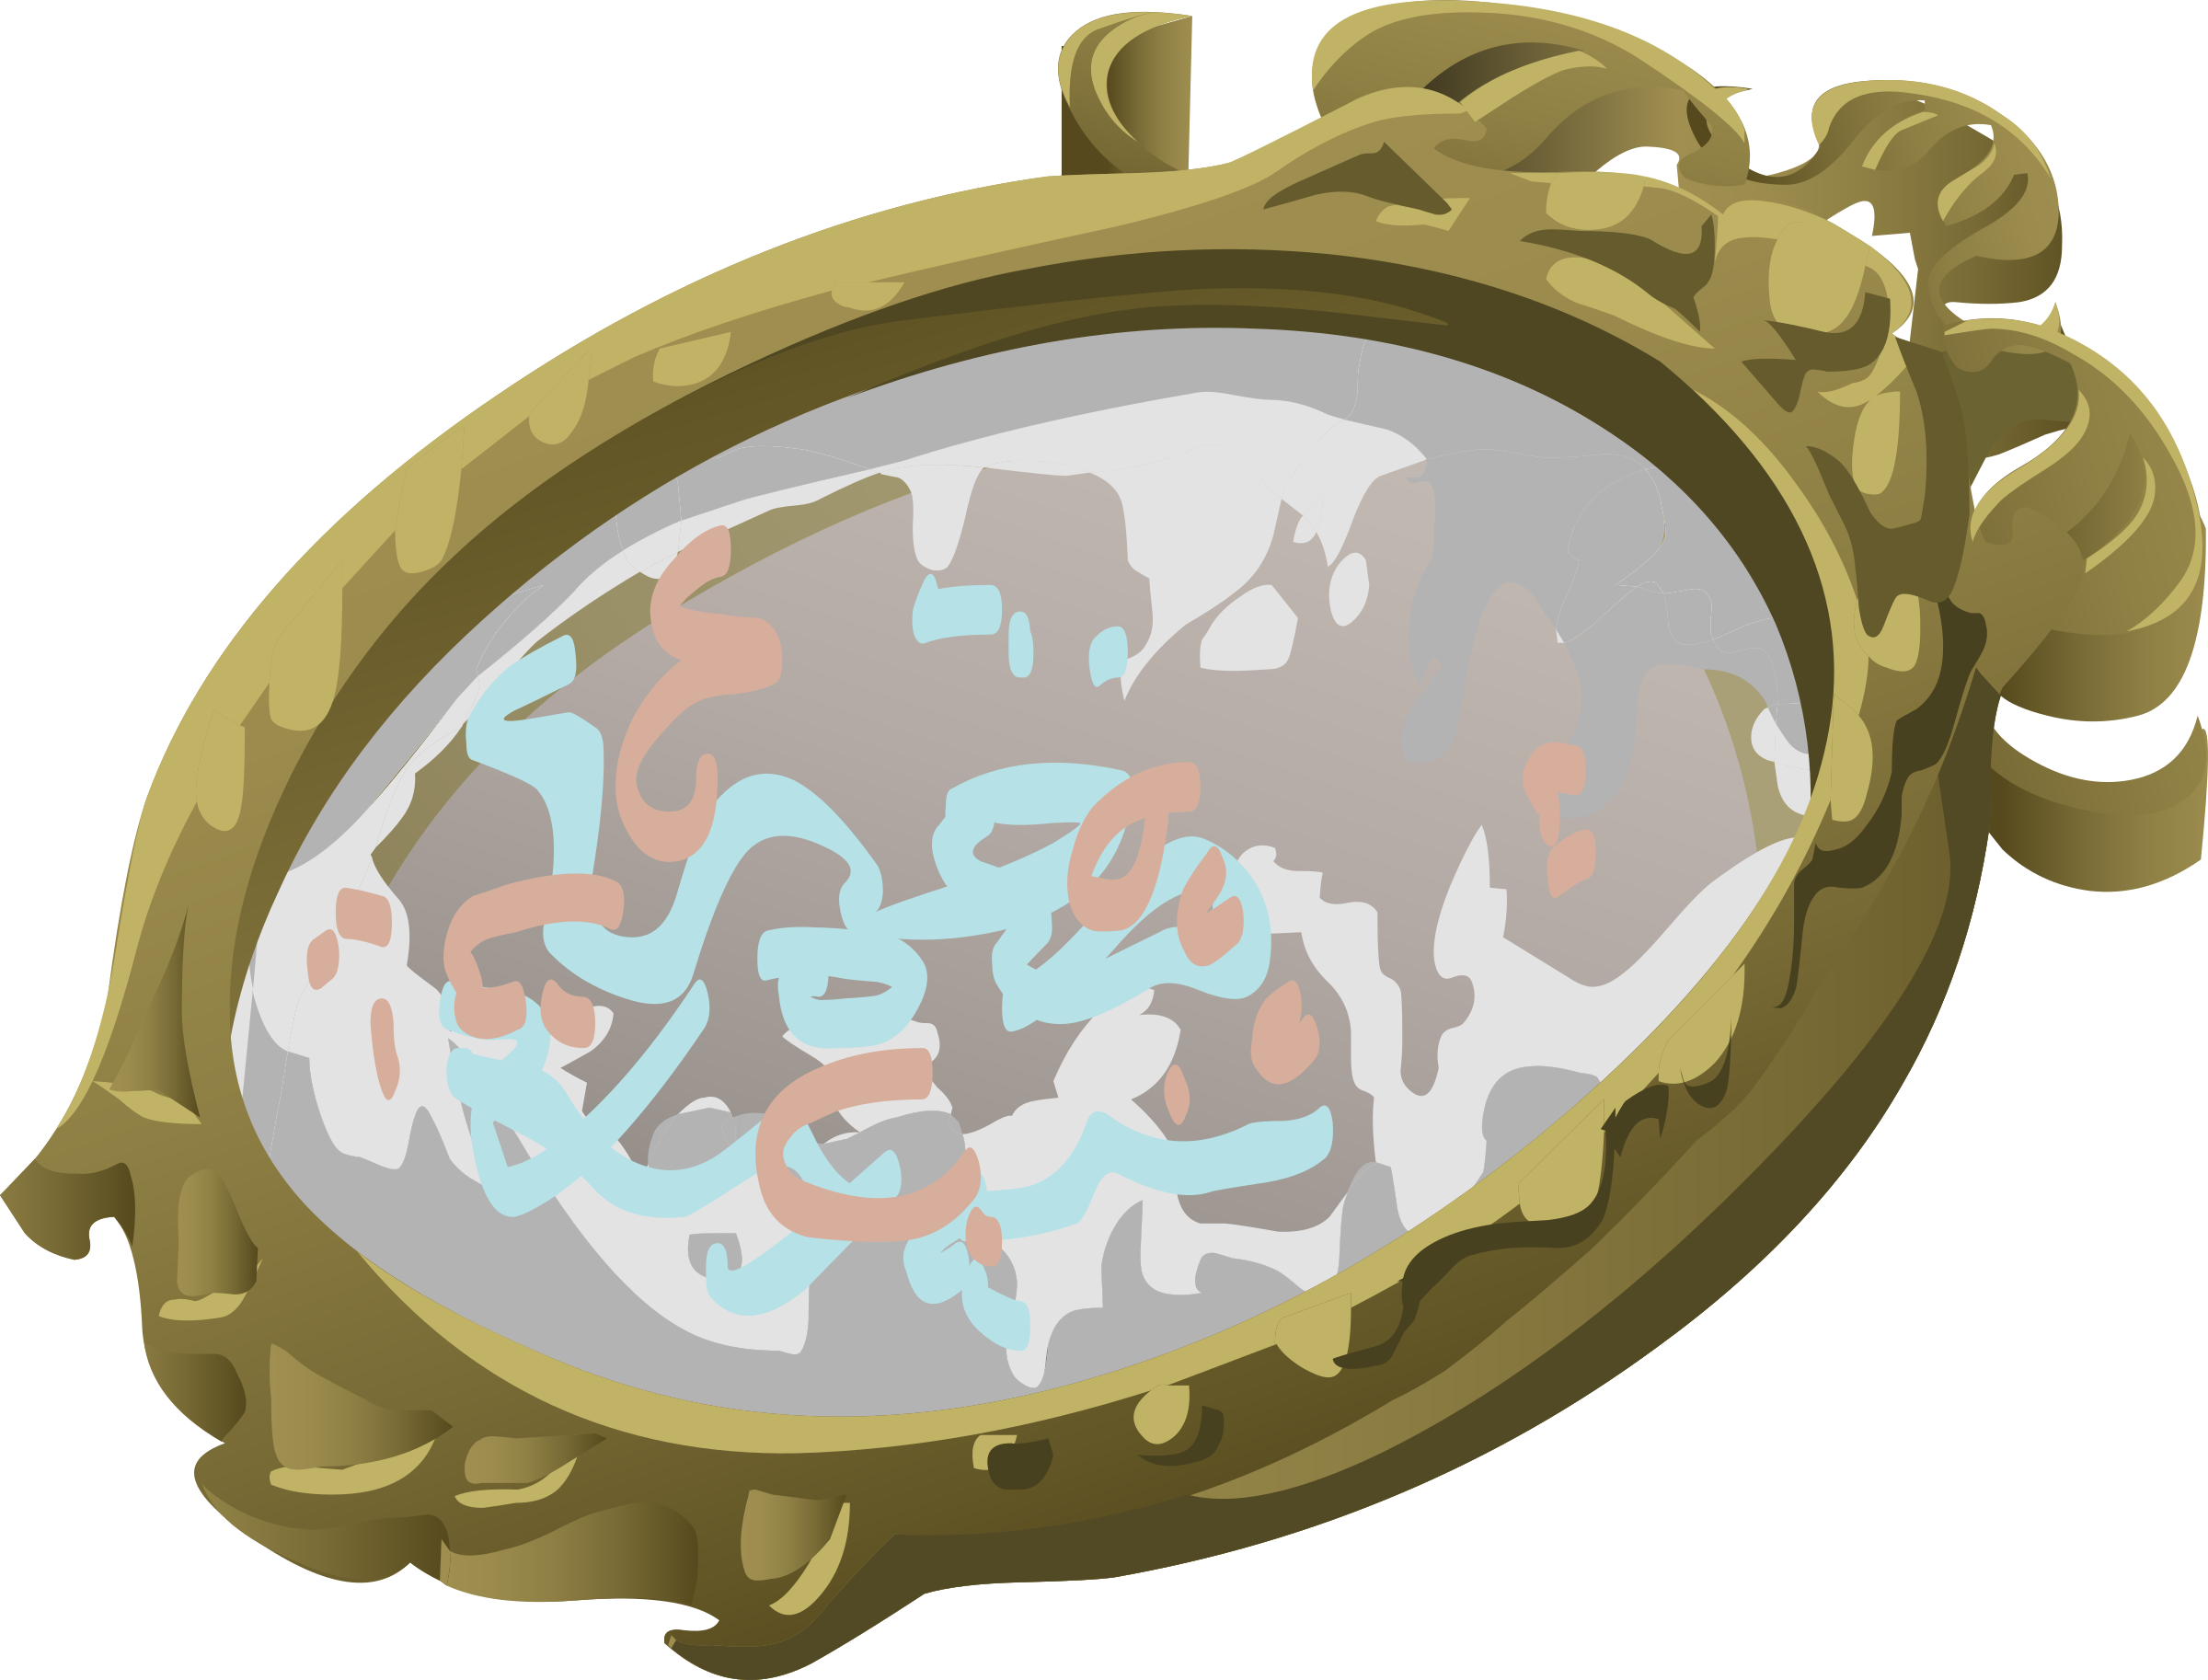 Mirror clipart illustration. Artifact with scribbles big